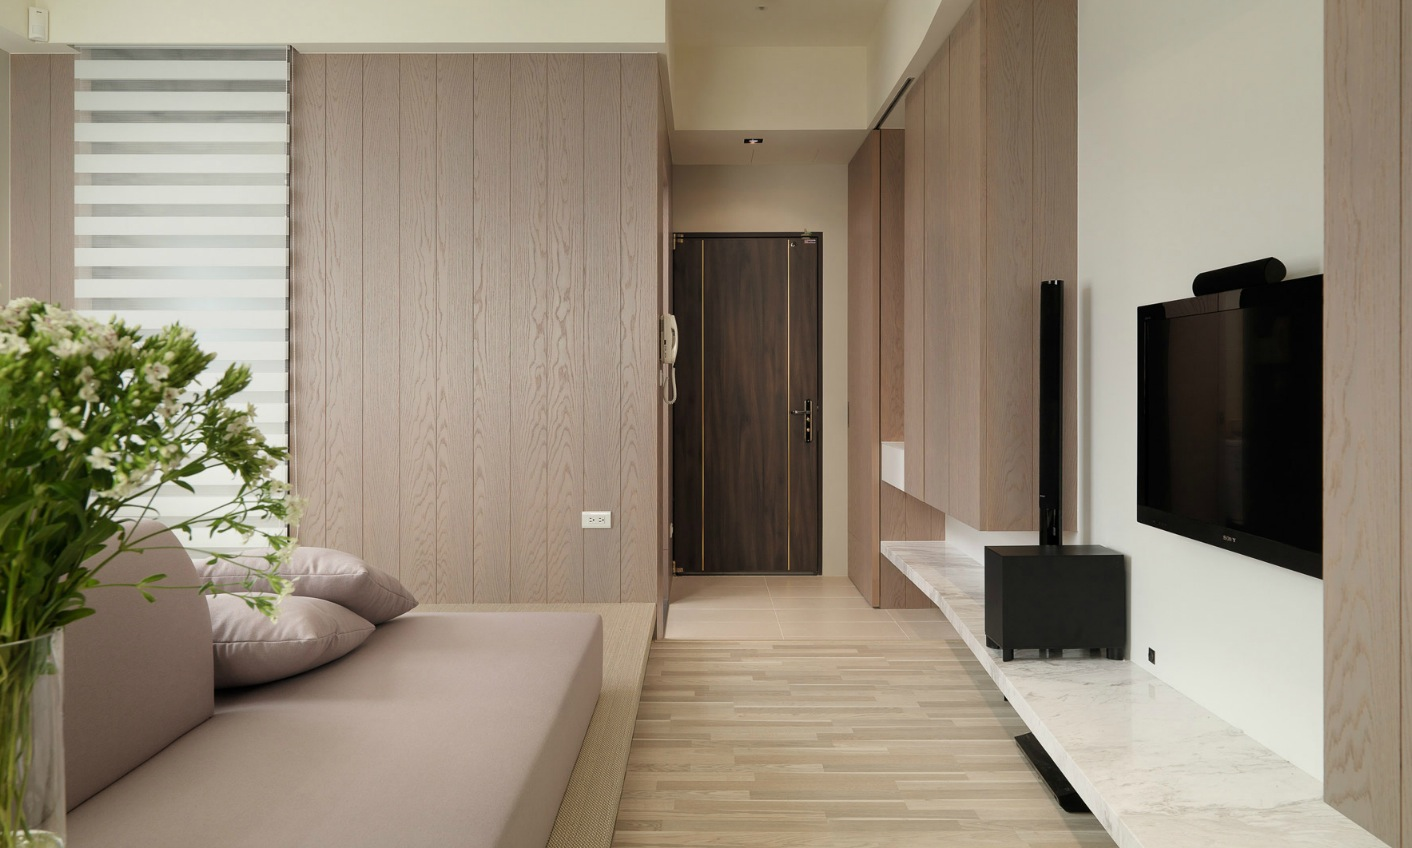 wall of wood cladding matches the finish of the wooden cabinetry to